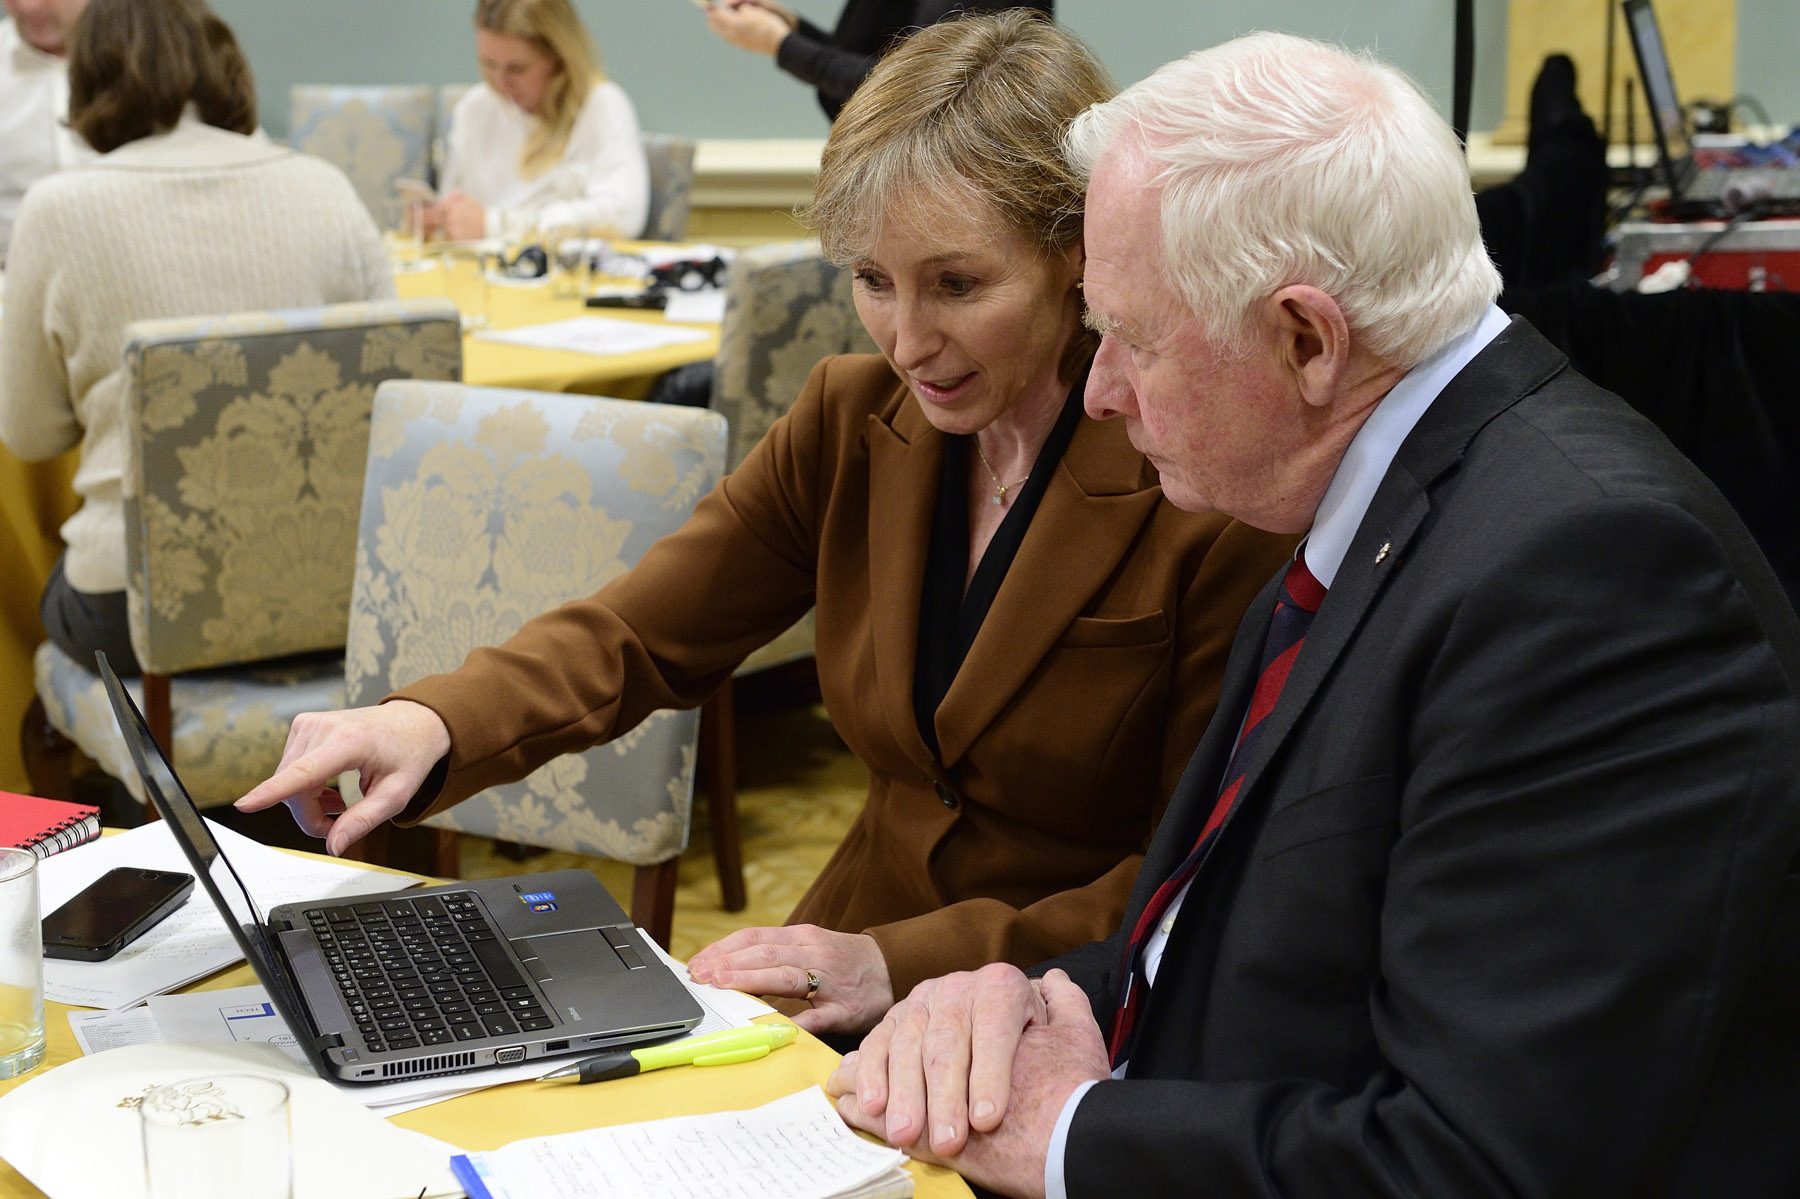 The Governor General, joined by Debra Gassewitz, President and CEO of the Sport Information Resource Centre (SIRC), thanked the hundreds of sports communities across Canada participating in the conference via a webinar.